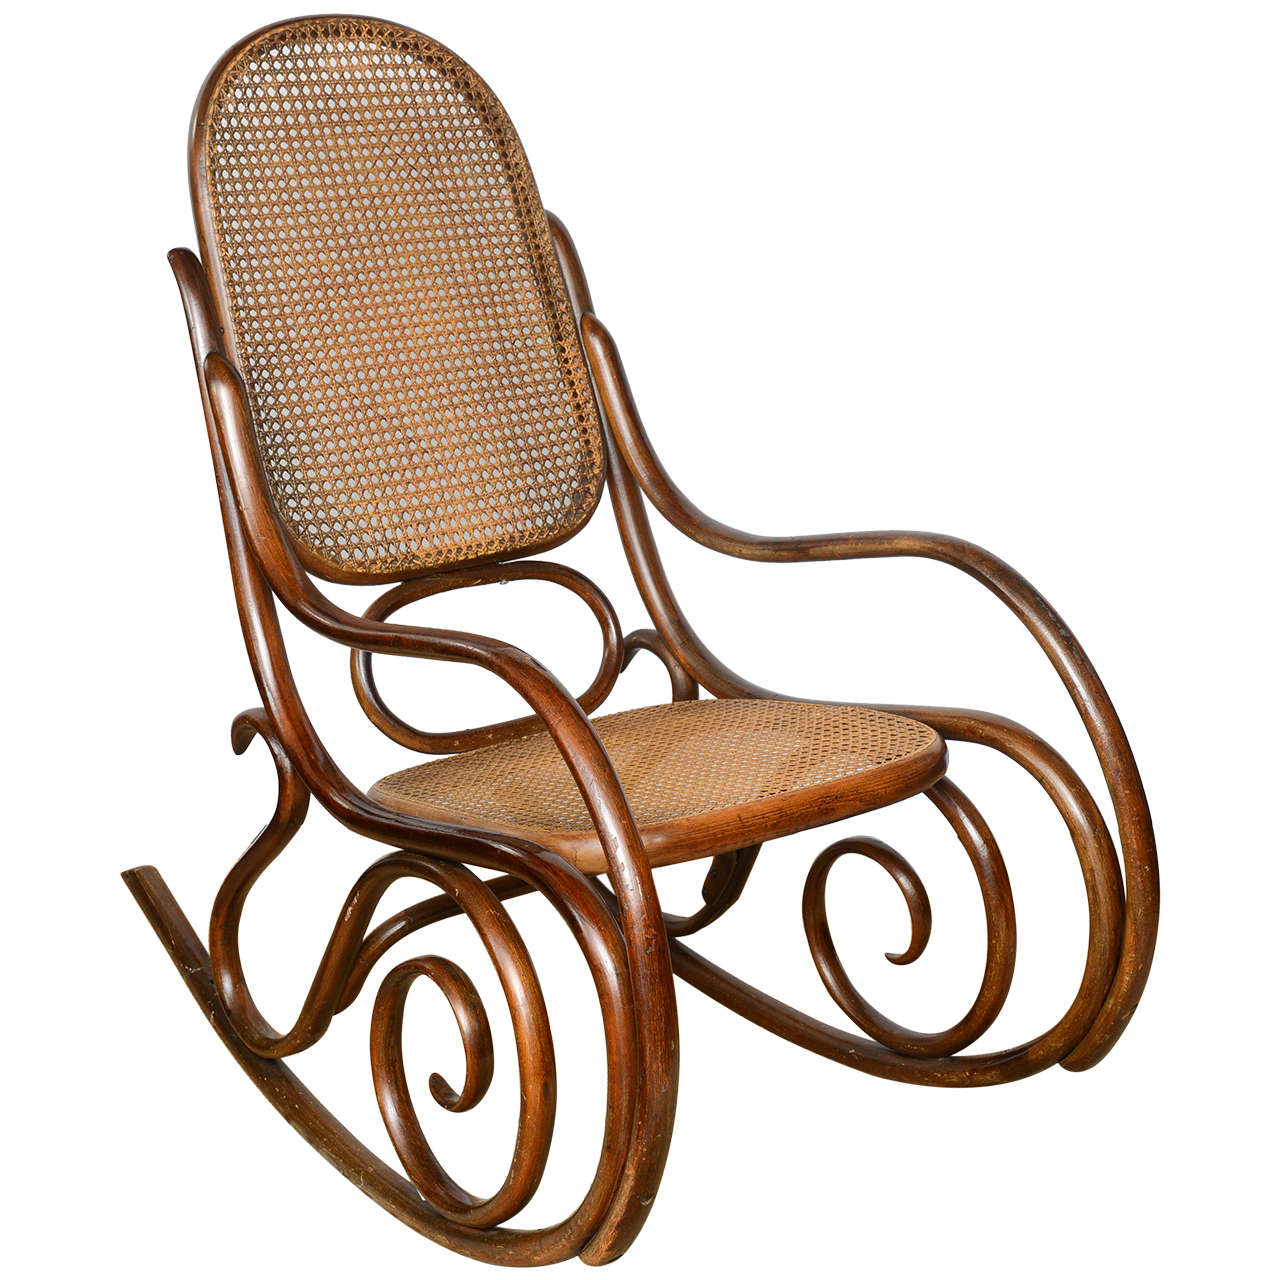 Rockin Chairs Vintage Thonet Bentwood Rocking Chair At 1stdibs